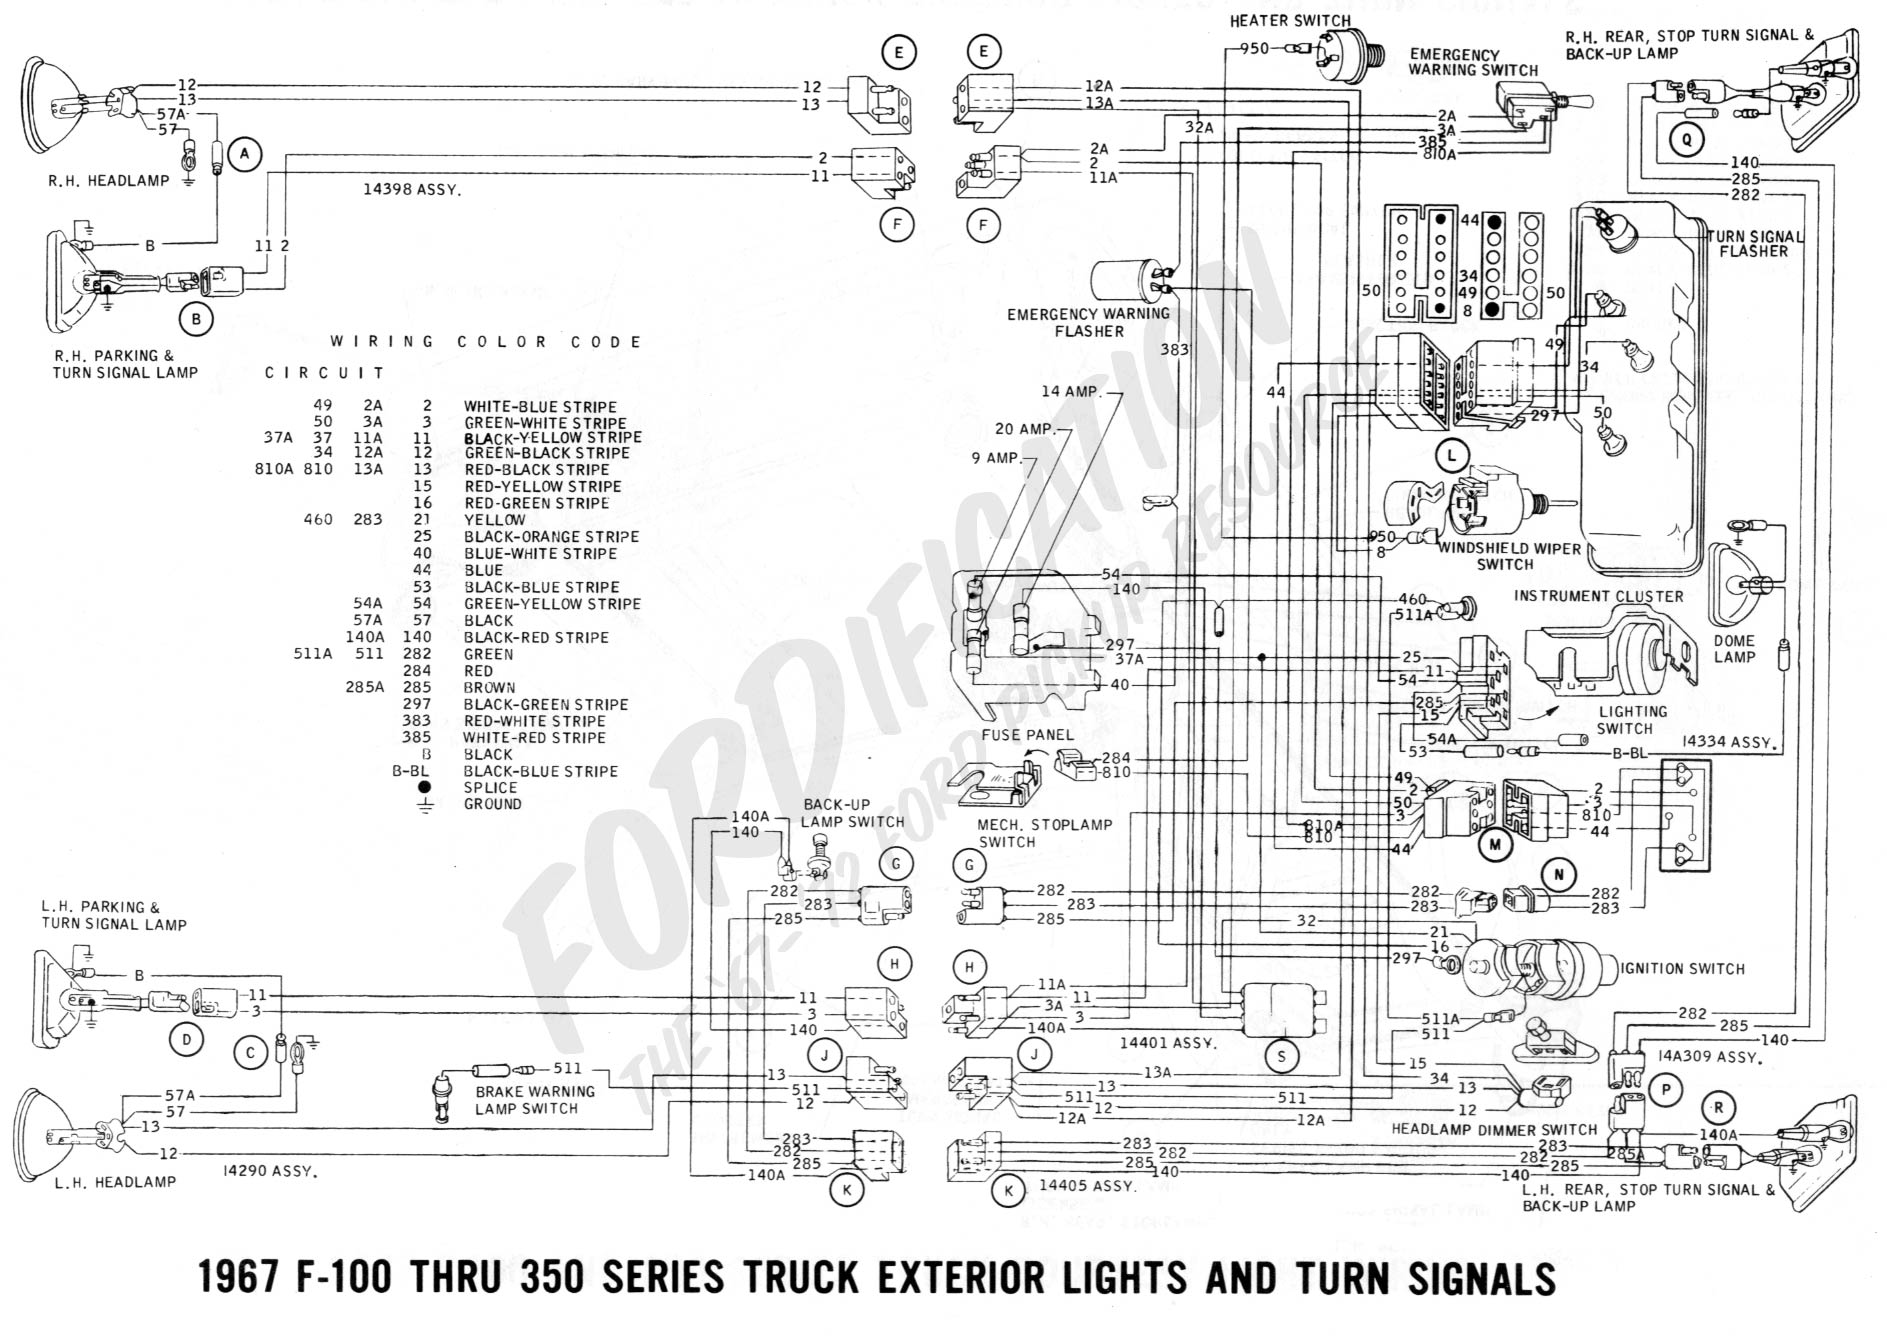 2000 F350 Steering Column Wiring Harness Guide And Troubleshooting Diagram 2002 Dodge Ram V1 0 1978 Ford Truck Neutral Switch Diagrams Todays Rh 1 14 12 1813weddingbarn Com